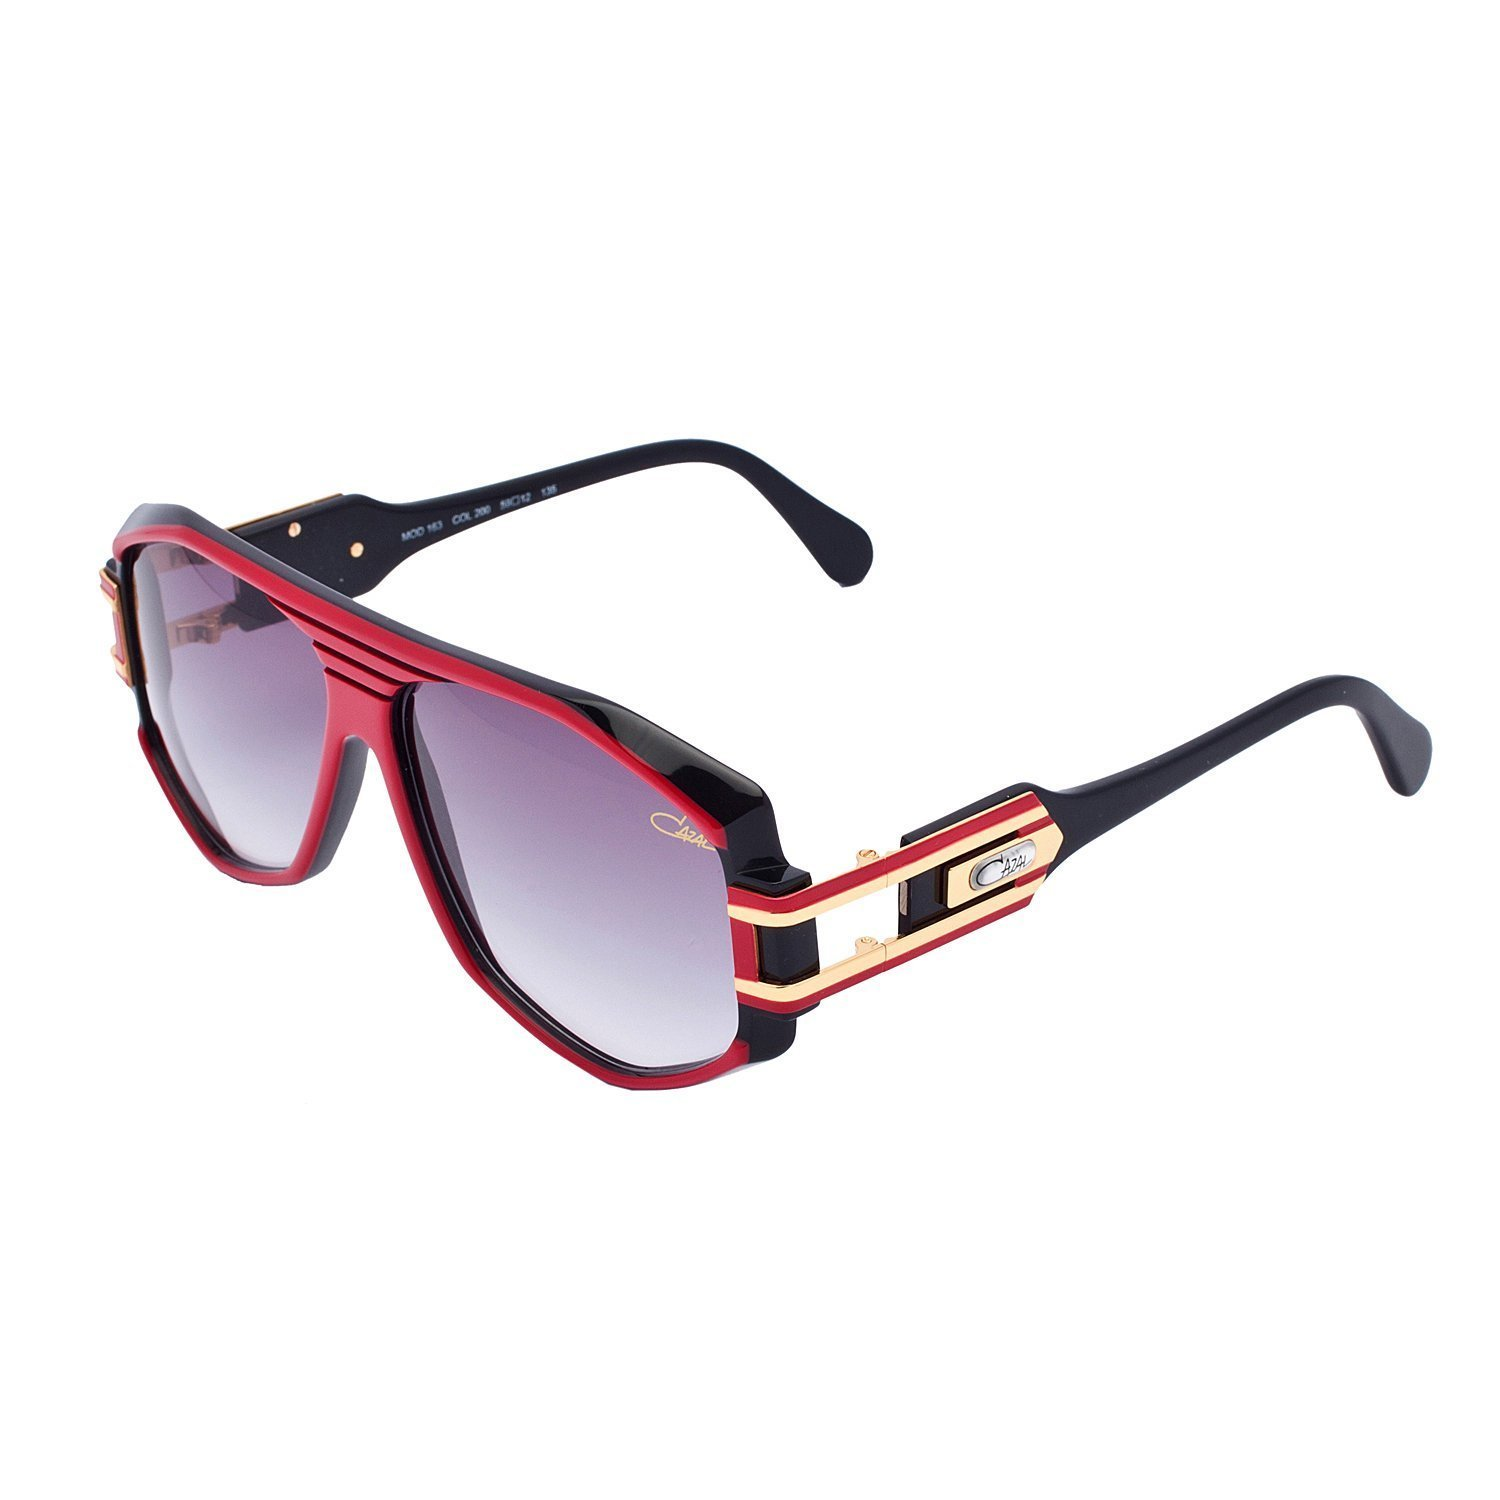 35acc7ff69a Get Quotations · Cazal 163 Sunglasses Color 200SG Red black